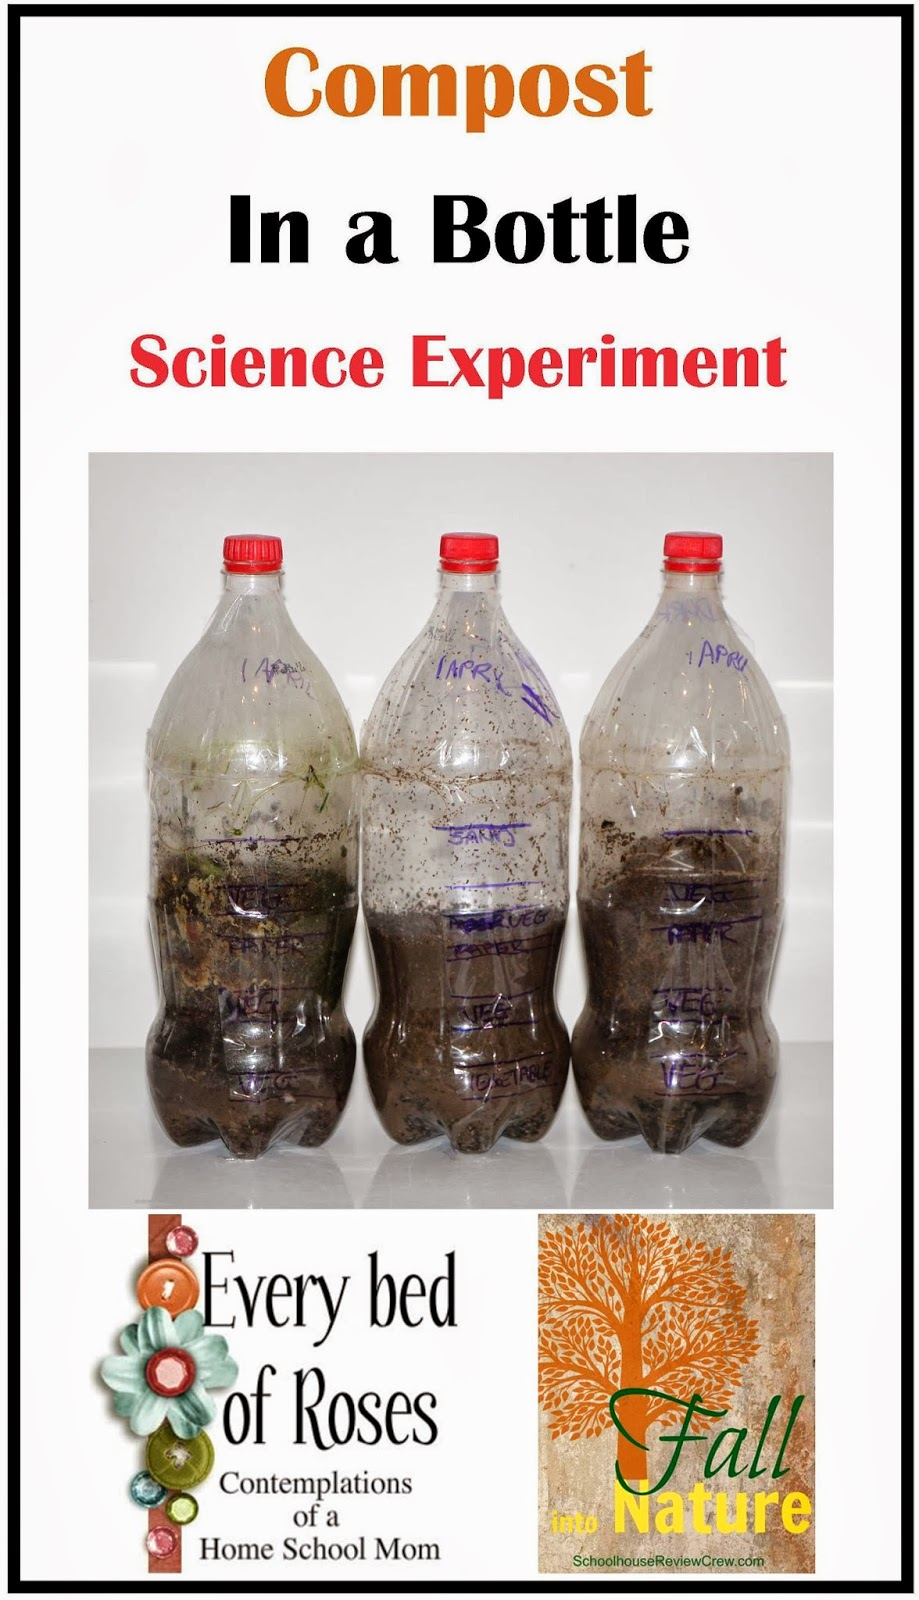 compost in a bottle pdf